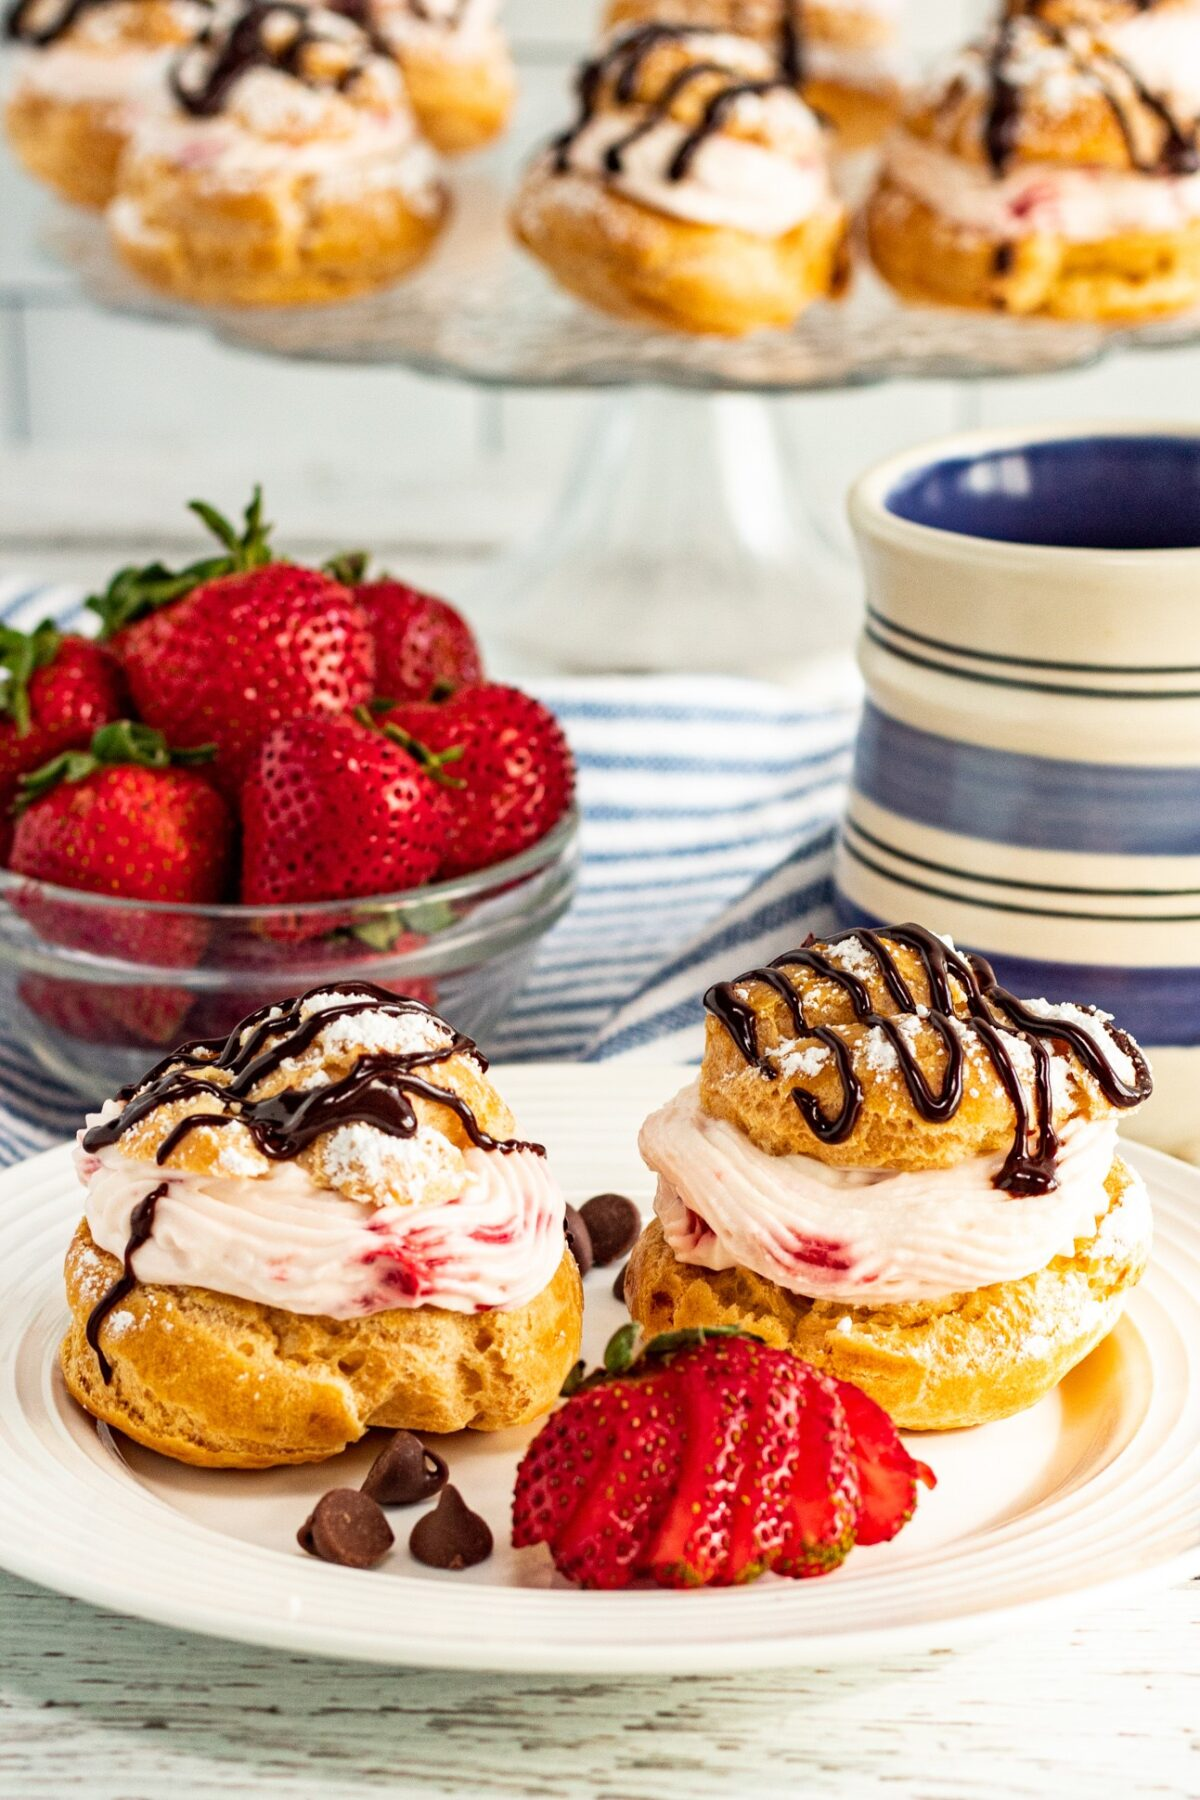 These Strawberry Cream Puffs feature a light, flaky pastry filled with strawberry whipped cream, topped with a chocolate ganache drizzle.